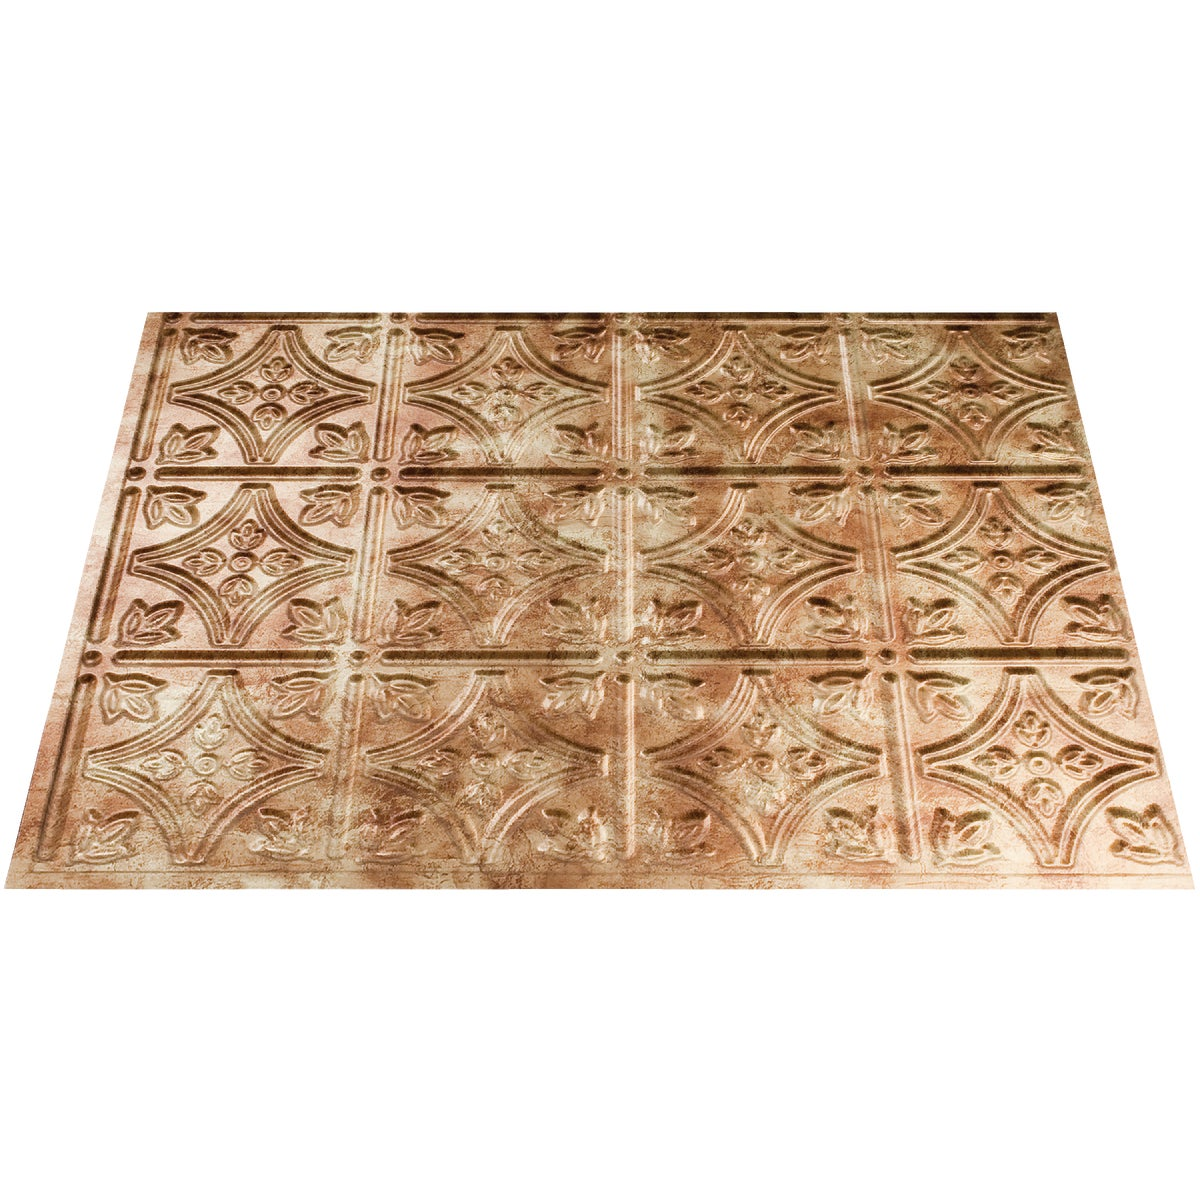 BERM BRONZE TRAD 1 PANEL - D60-17 by Acp